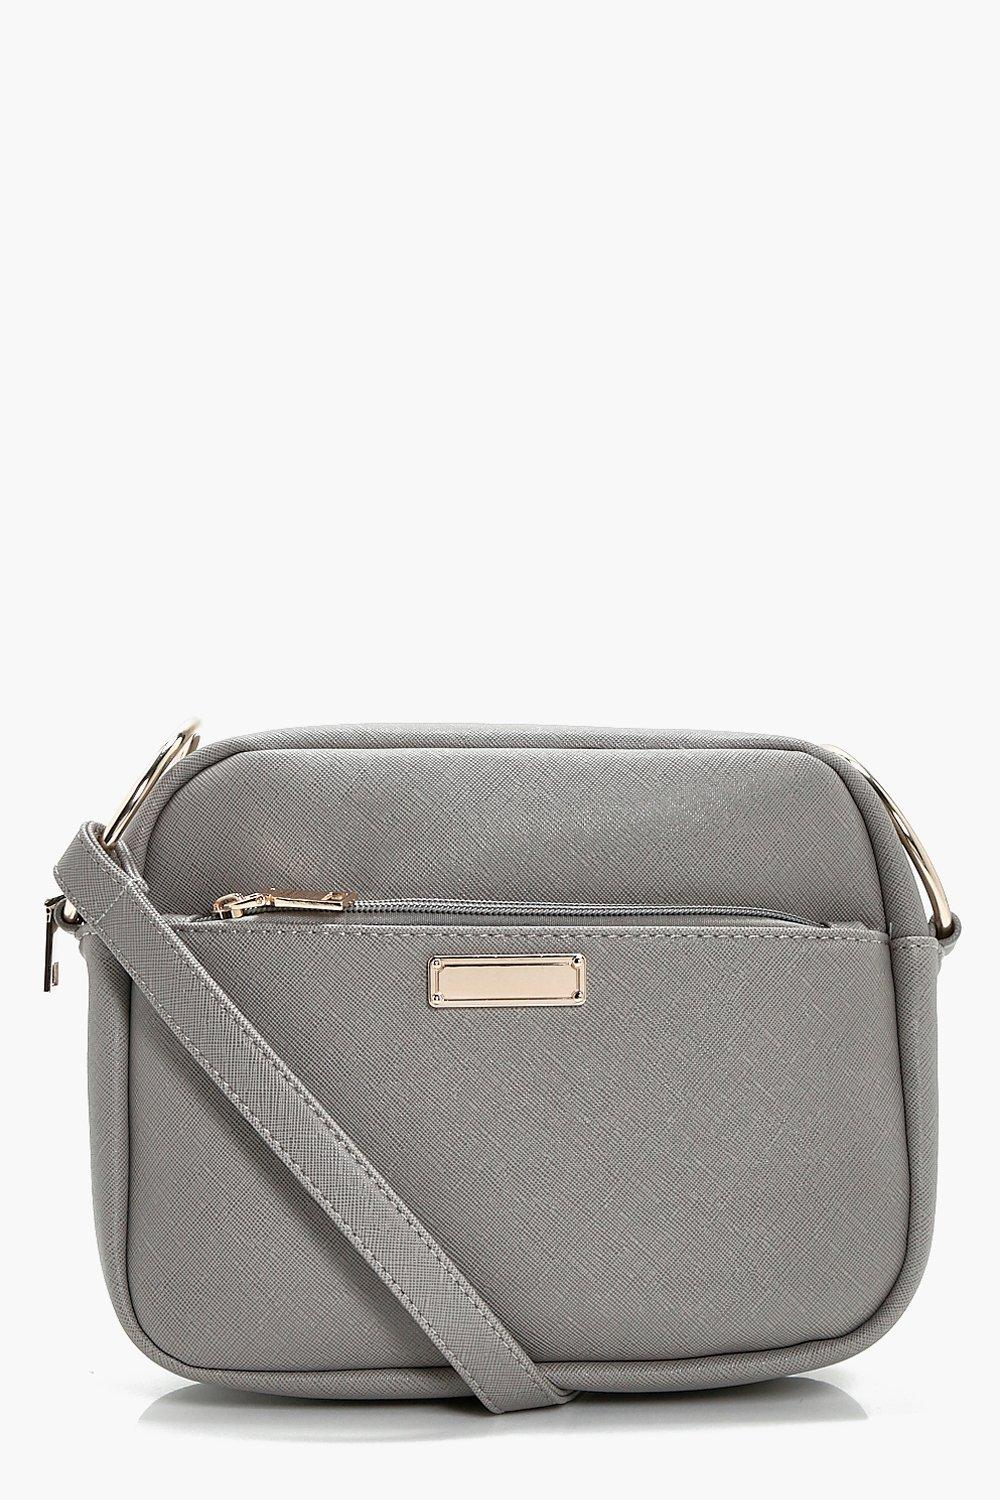 Crosshatch Camera Bag - grey - Ava Crosshatch Came